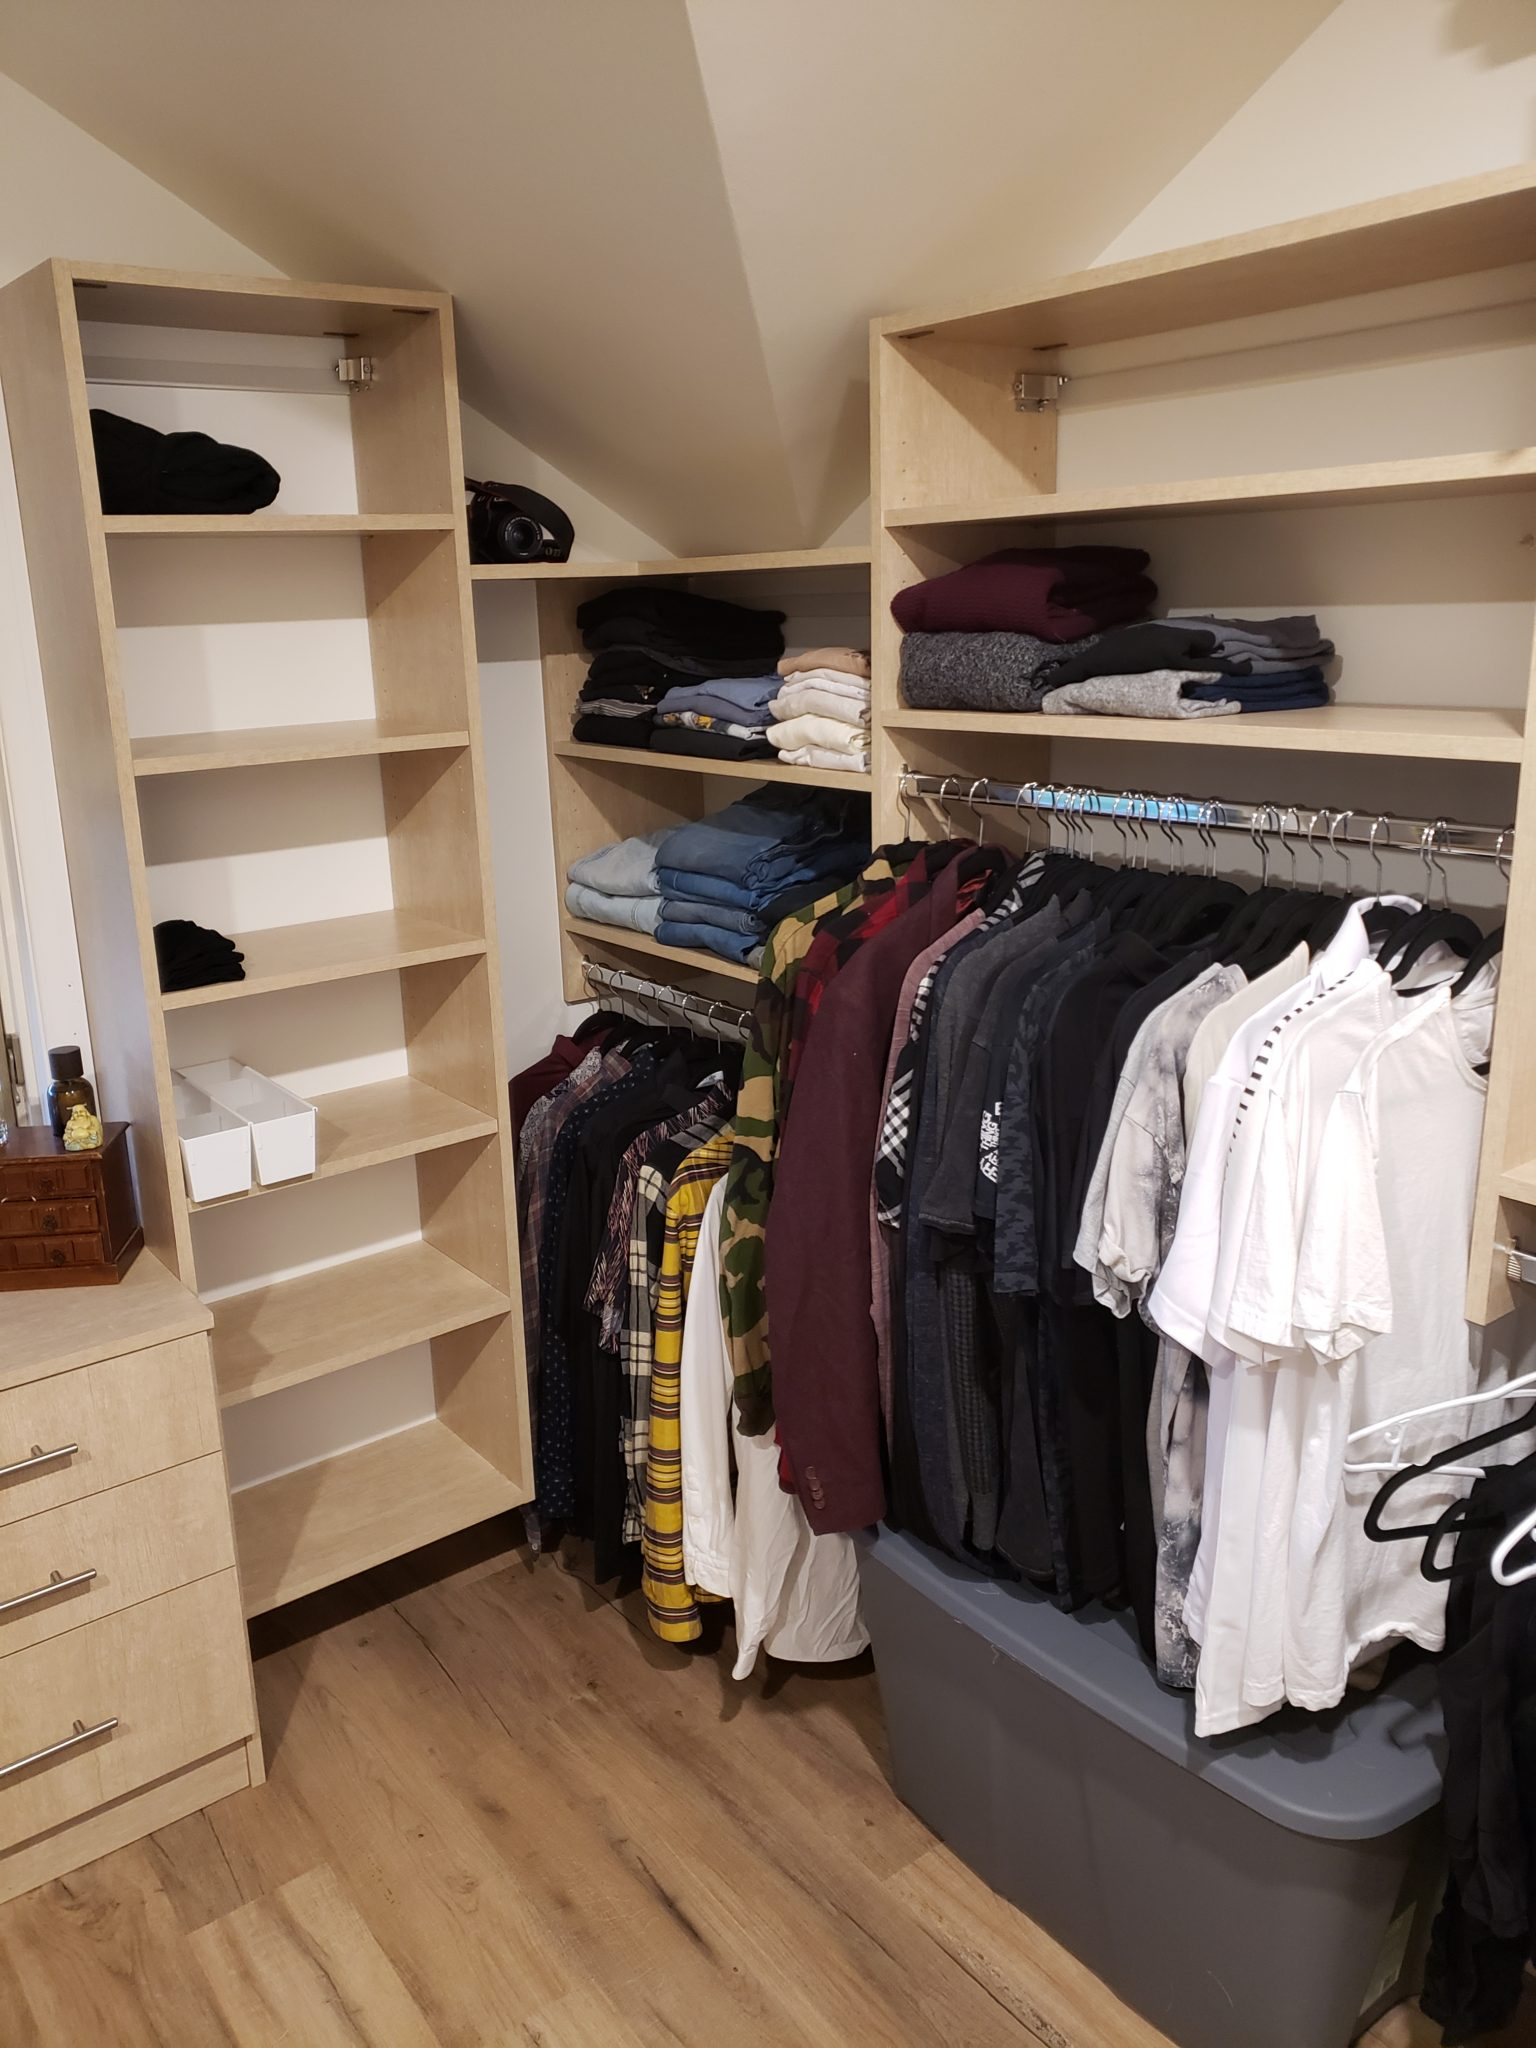 Home closet - After